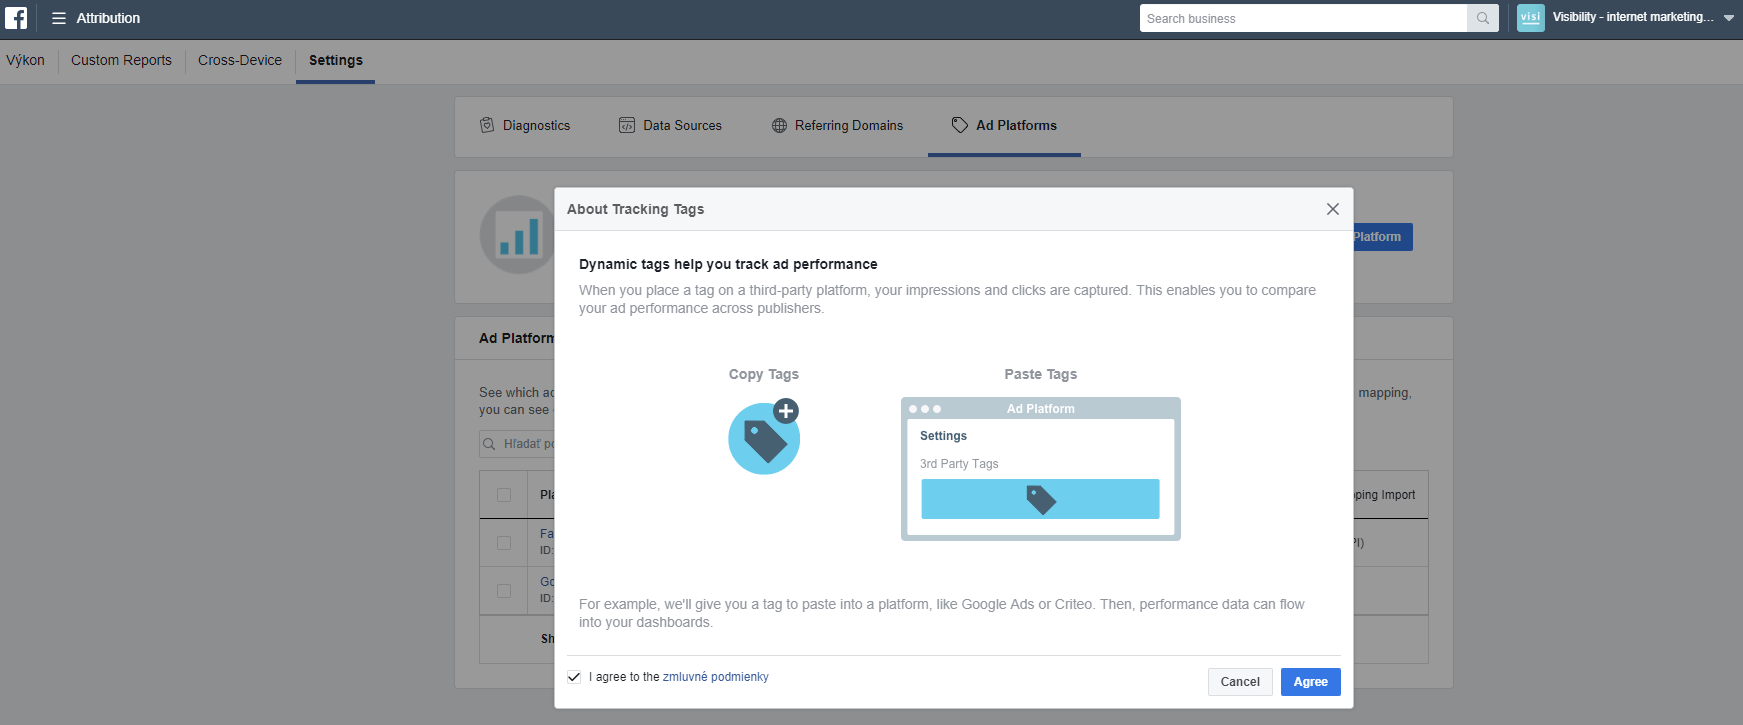 Facebook Attribution - Tracking tags